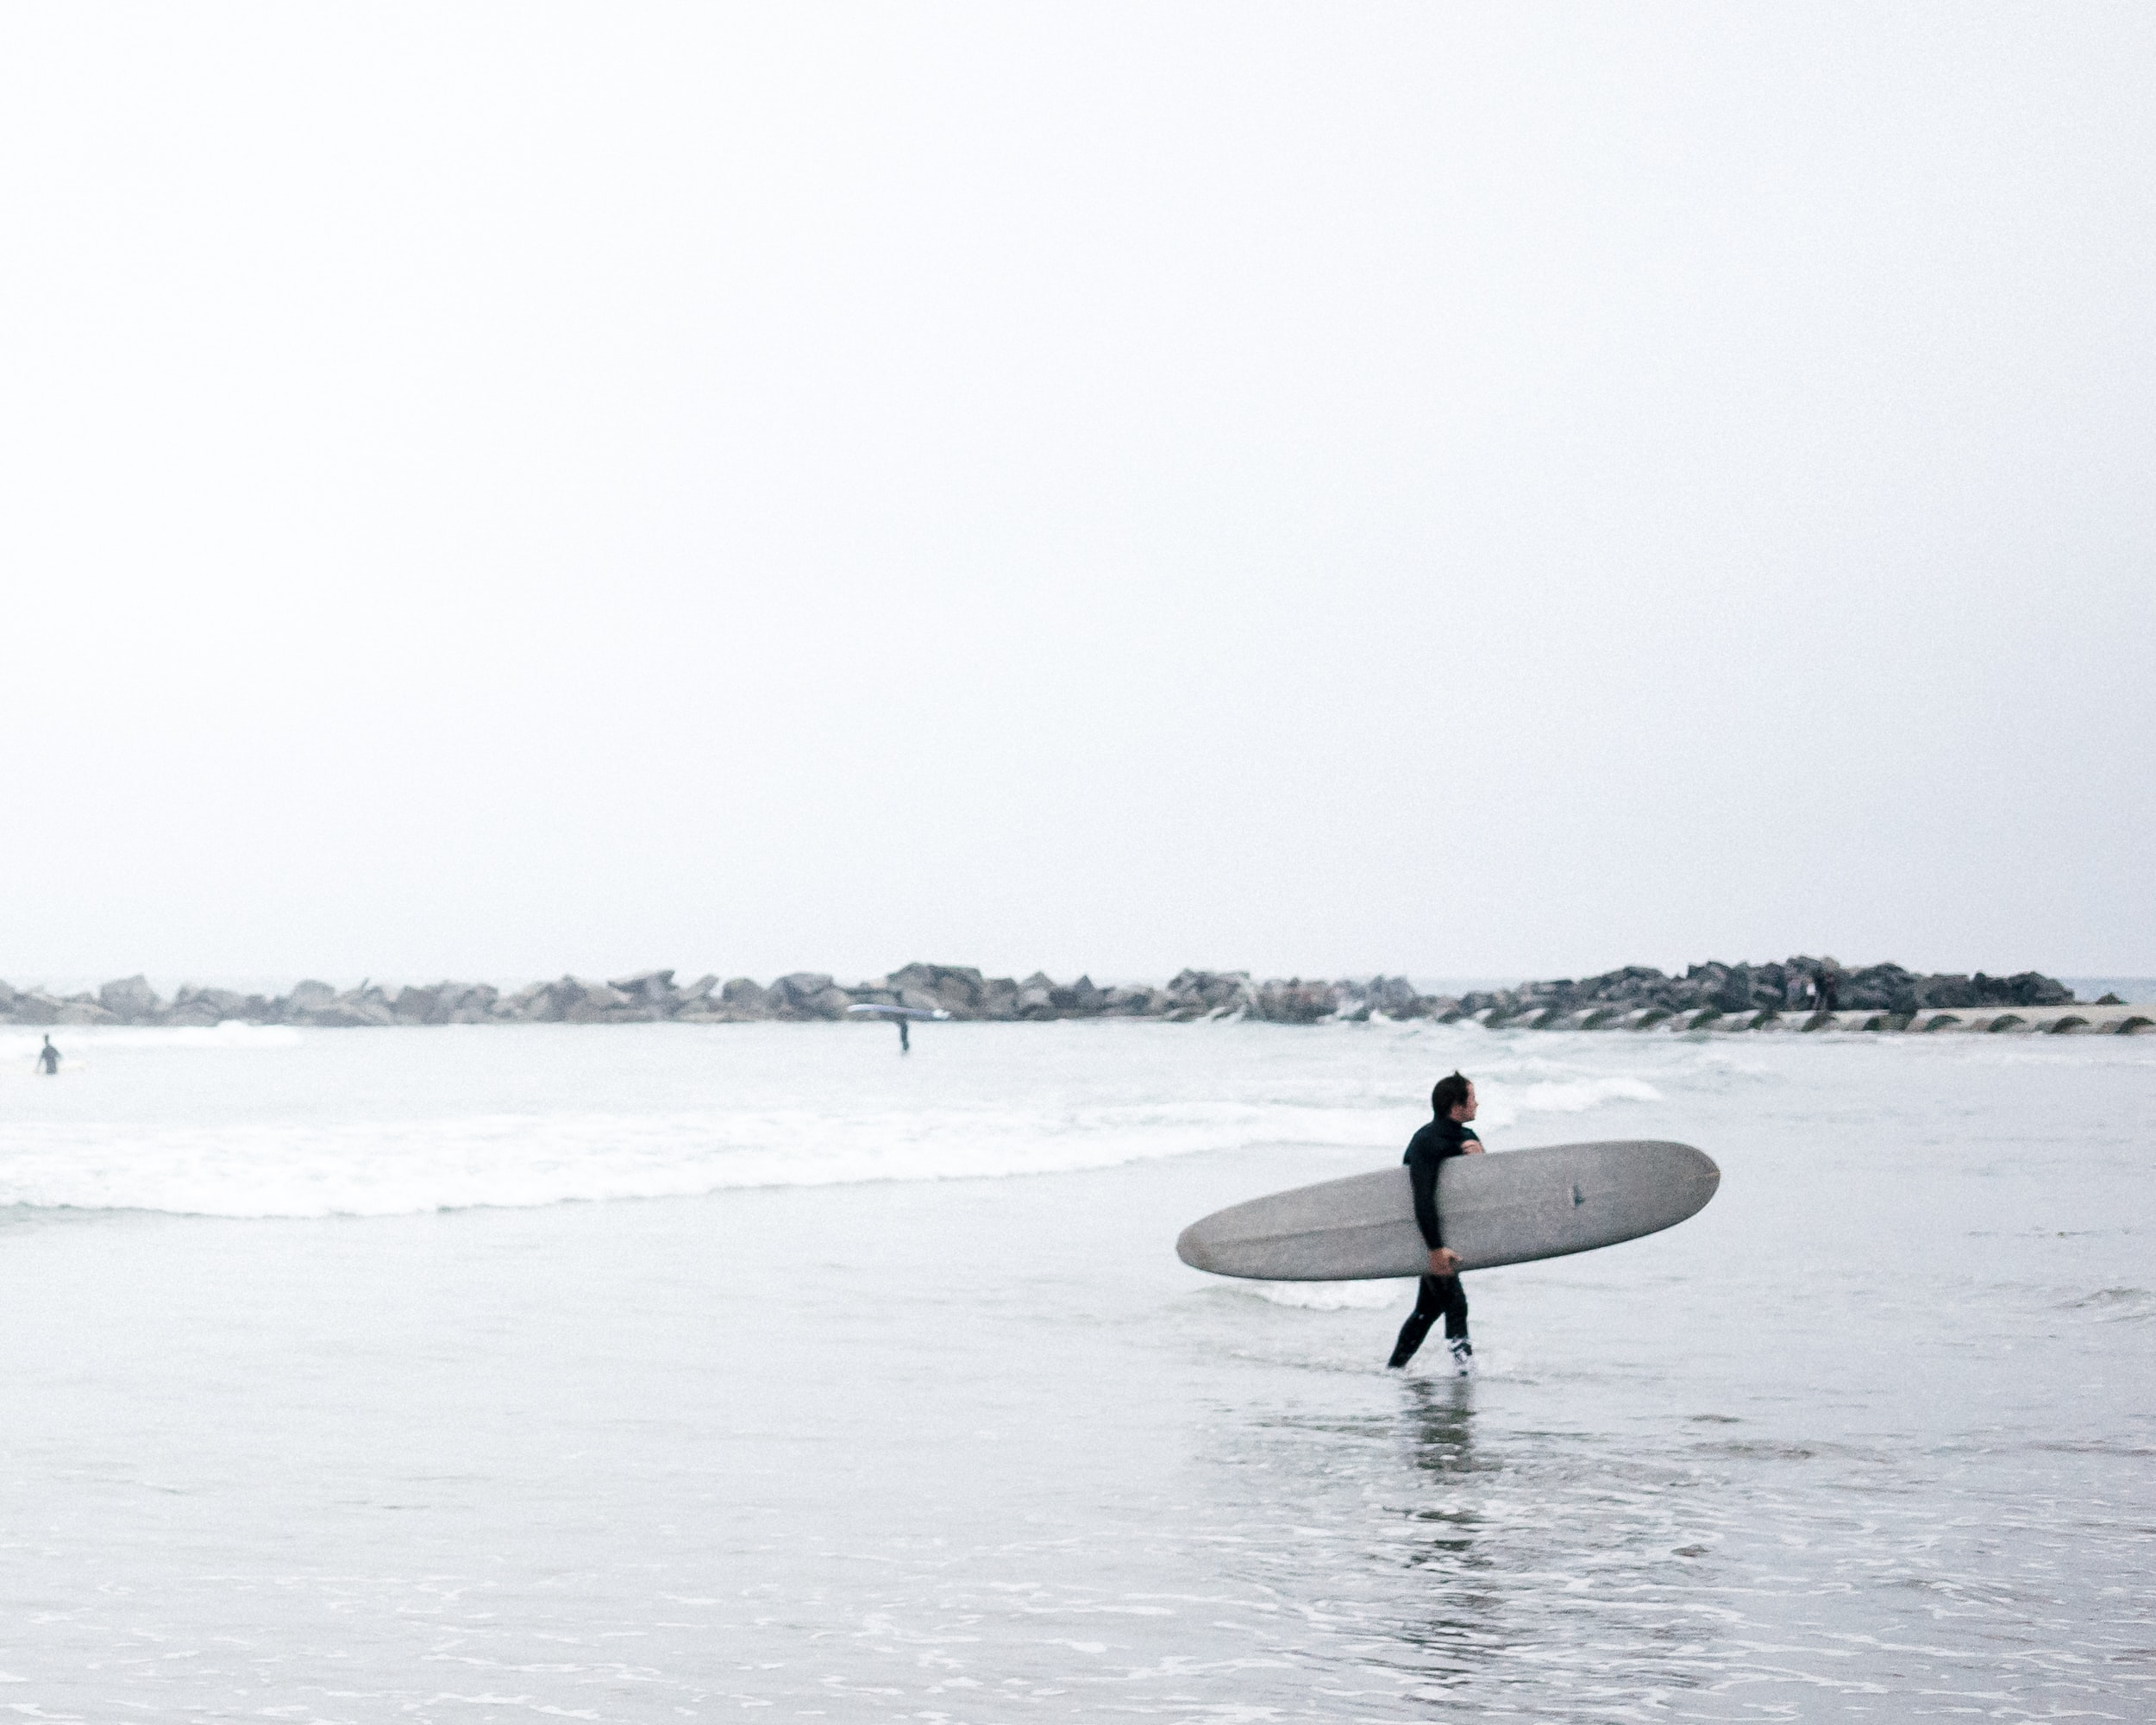 A person walking back to the beach while carrying his water board.